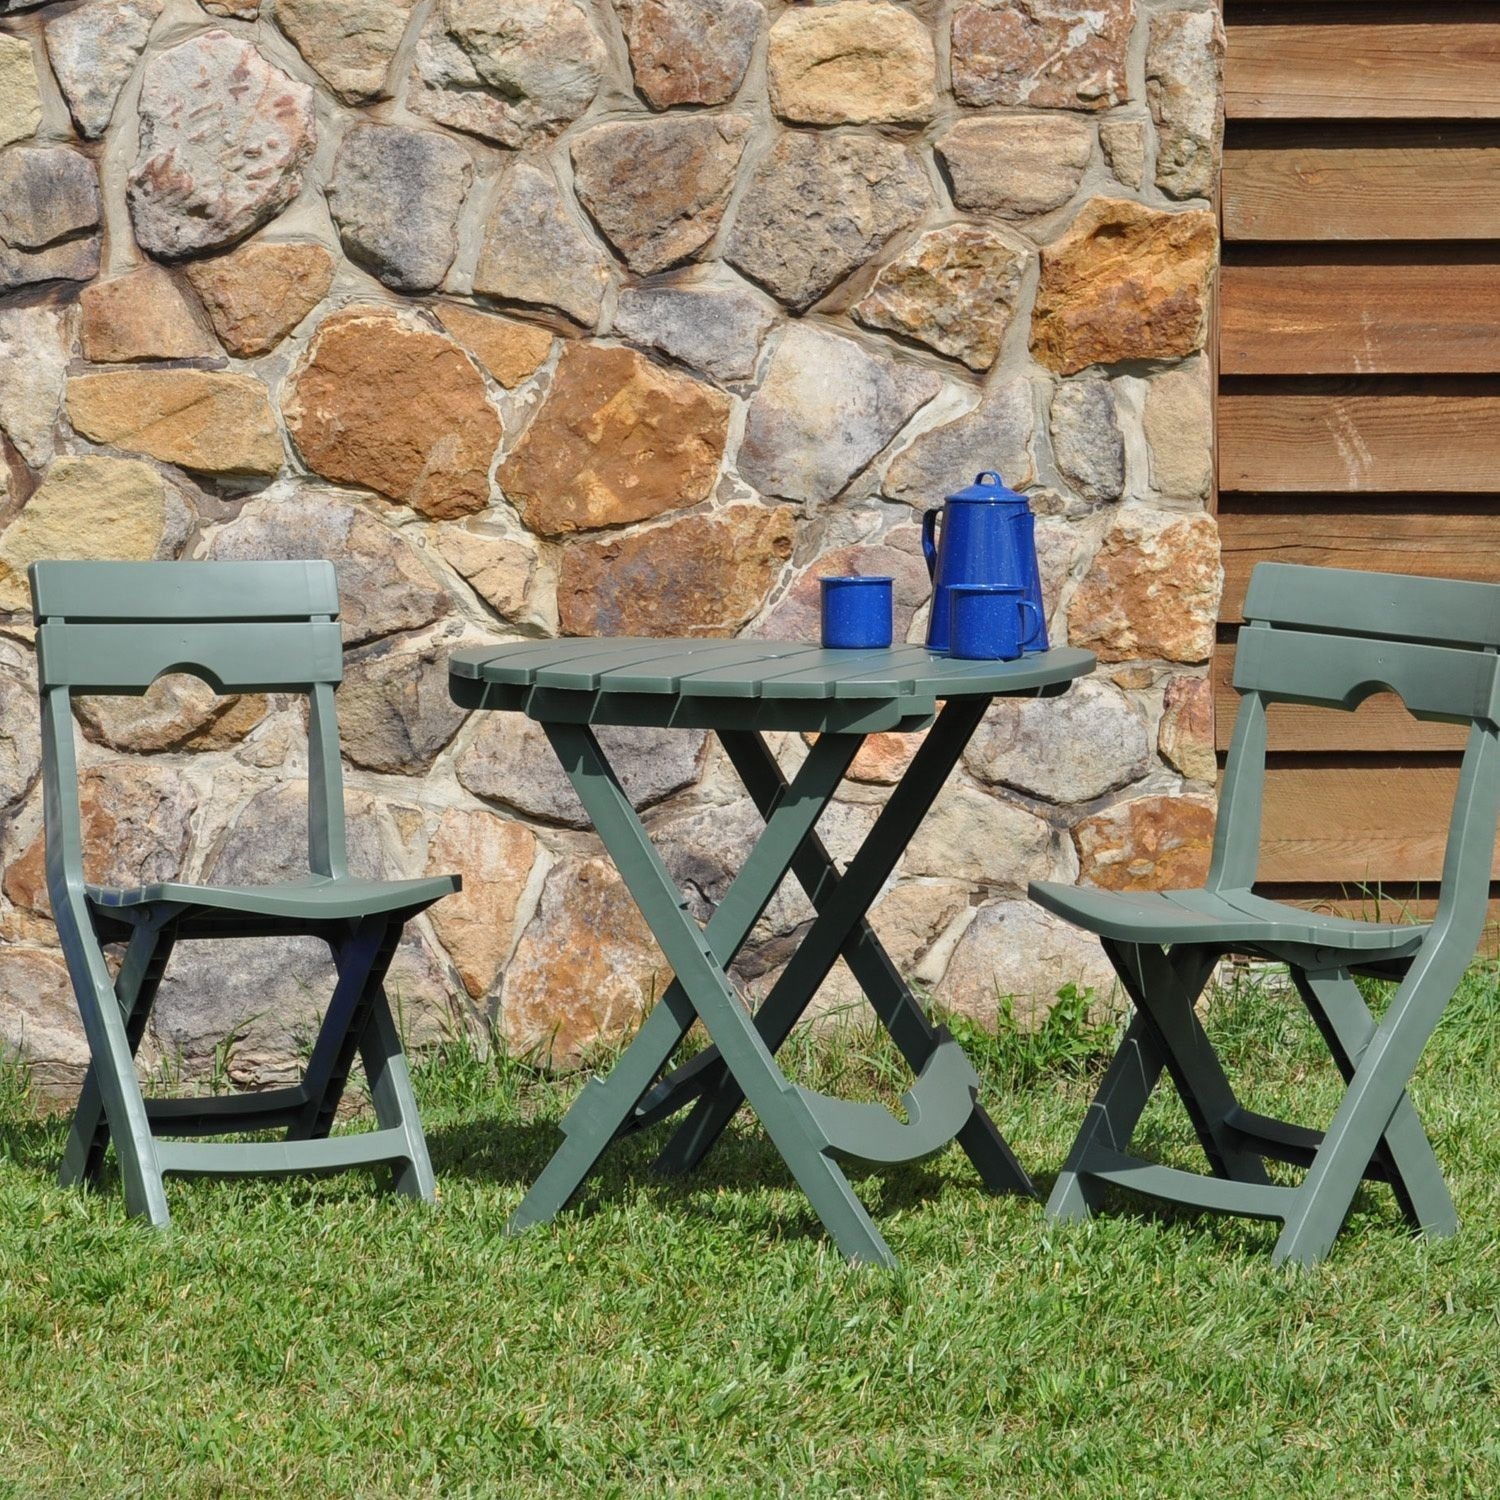 Outdoor bistro set patio garden yard dining furniture 3 piece stools chairs table cafe